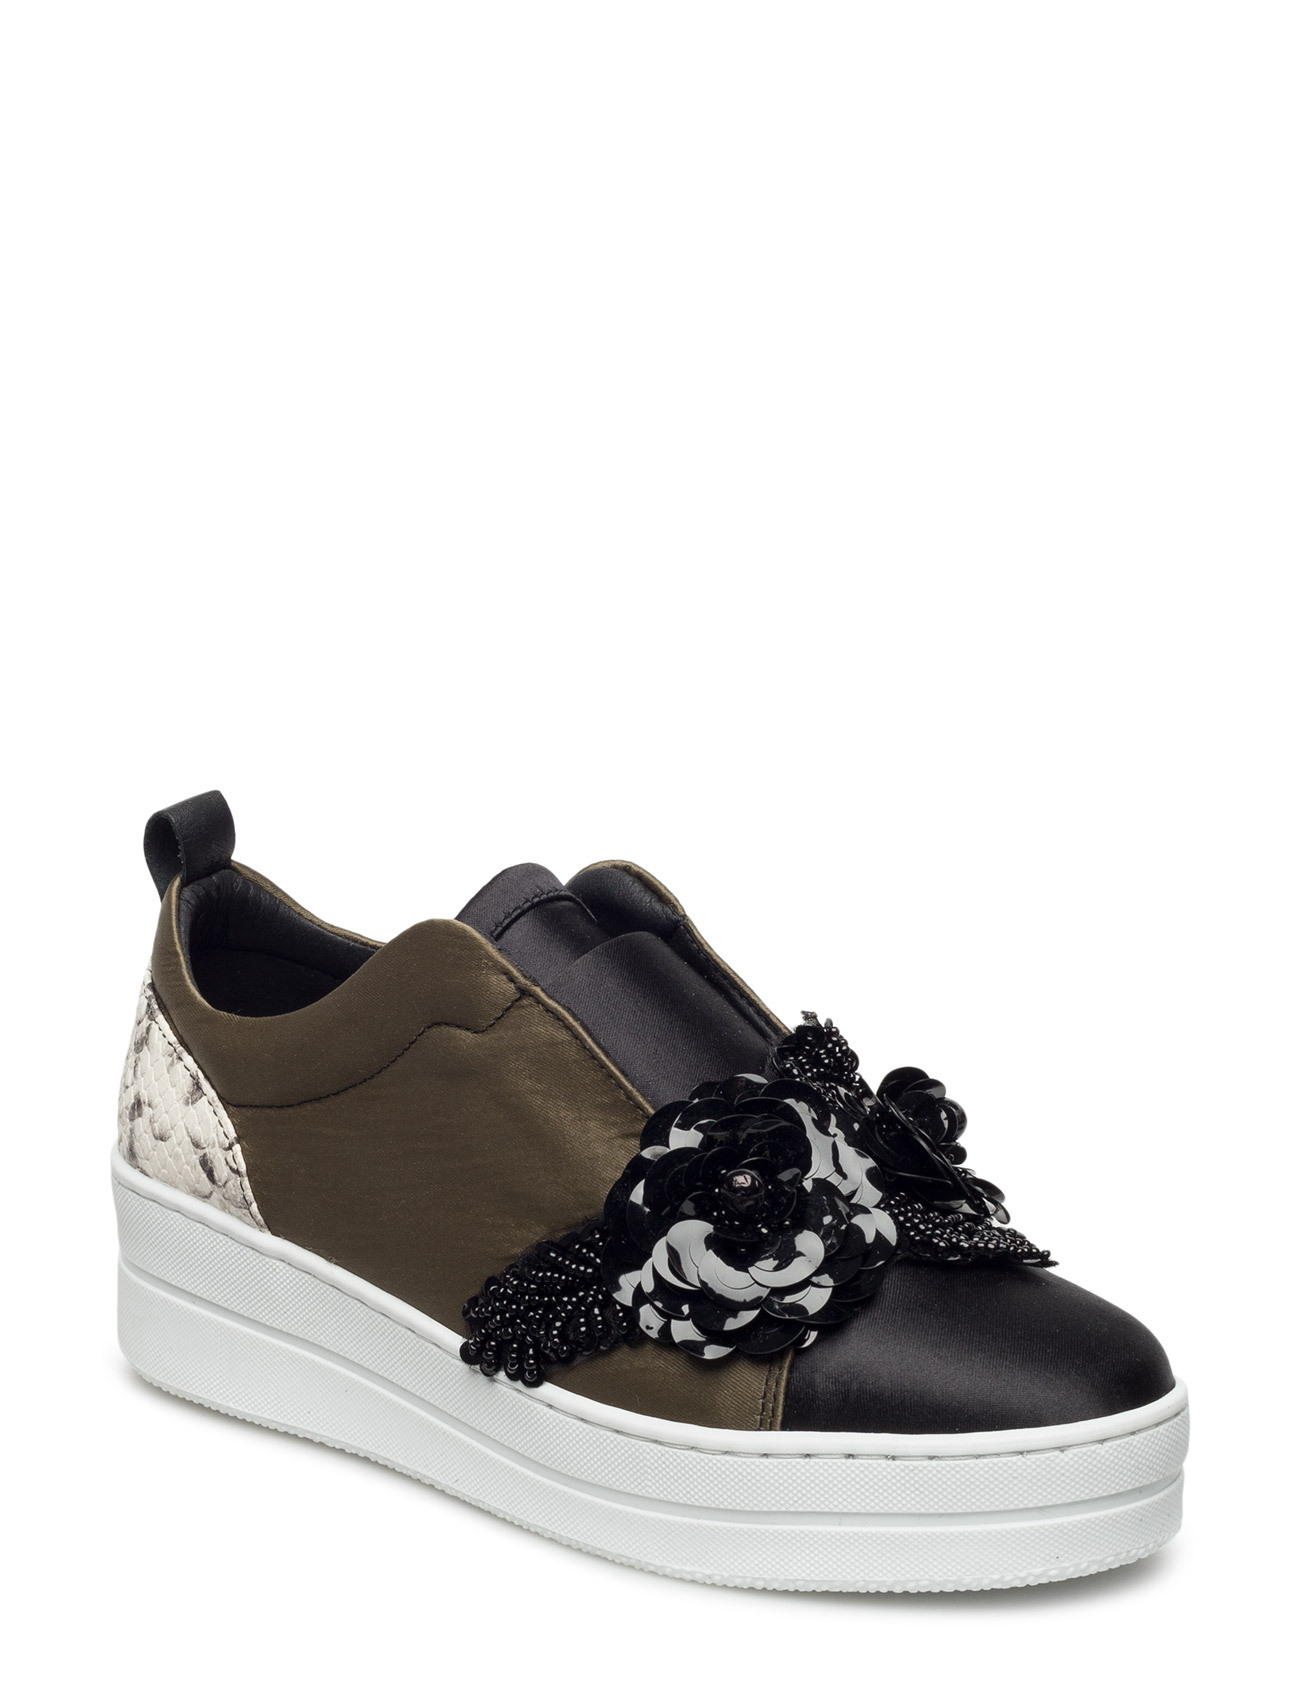 Loop Np Kurt Geiger London Sneakers til Damer i khaki